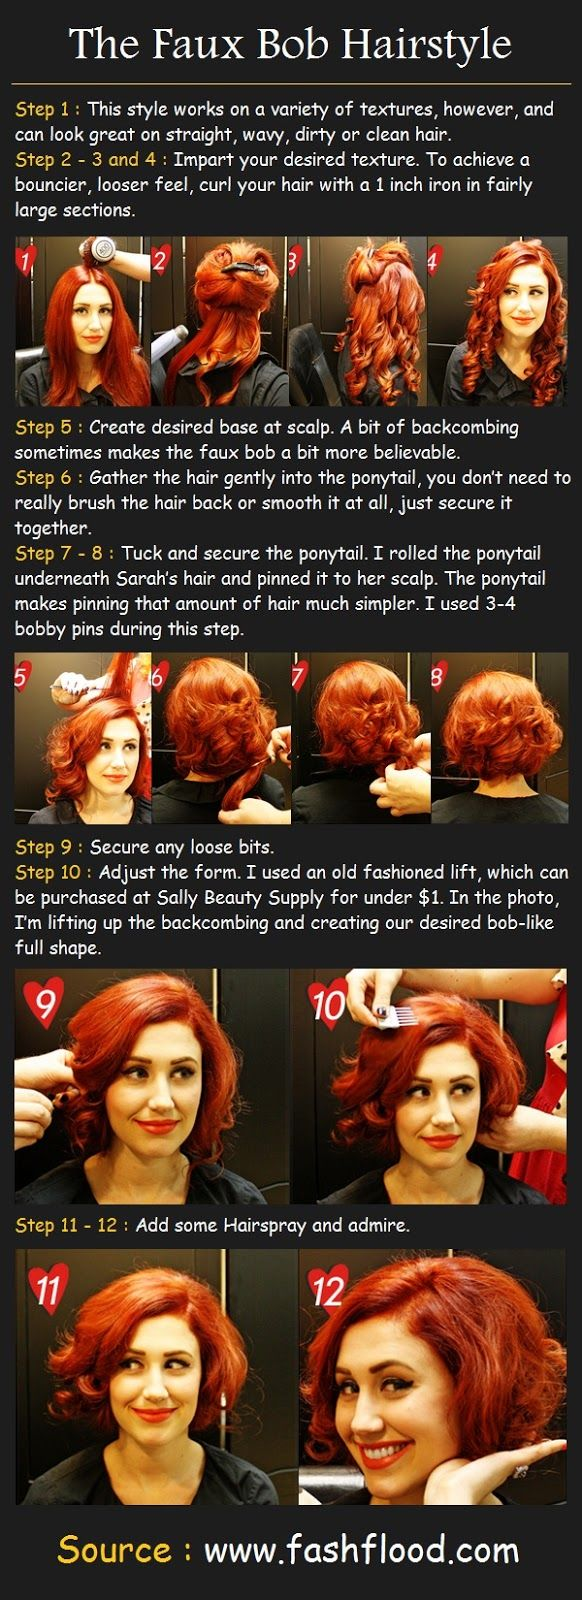 The Faux Bob Hair Tutorial | Beauty Tutorials for once my hair gets long and i think it's a good idea to cut it. when really, it's not okay to cut it.